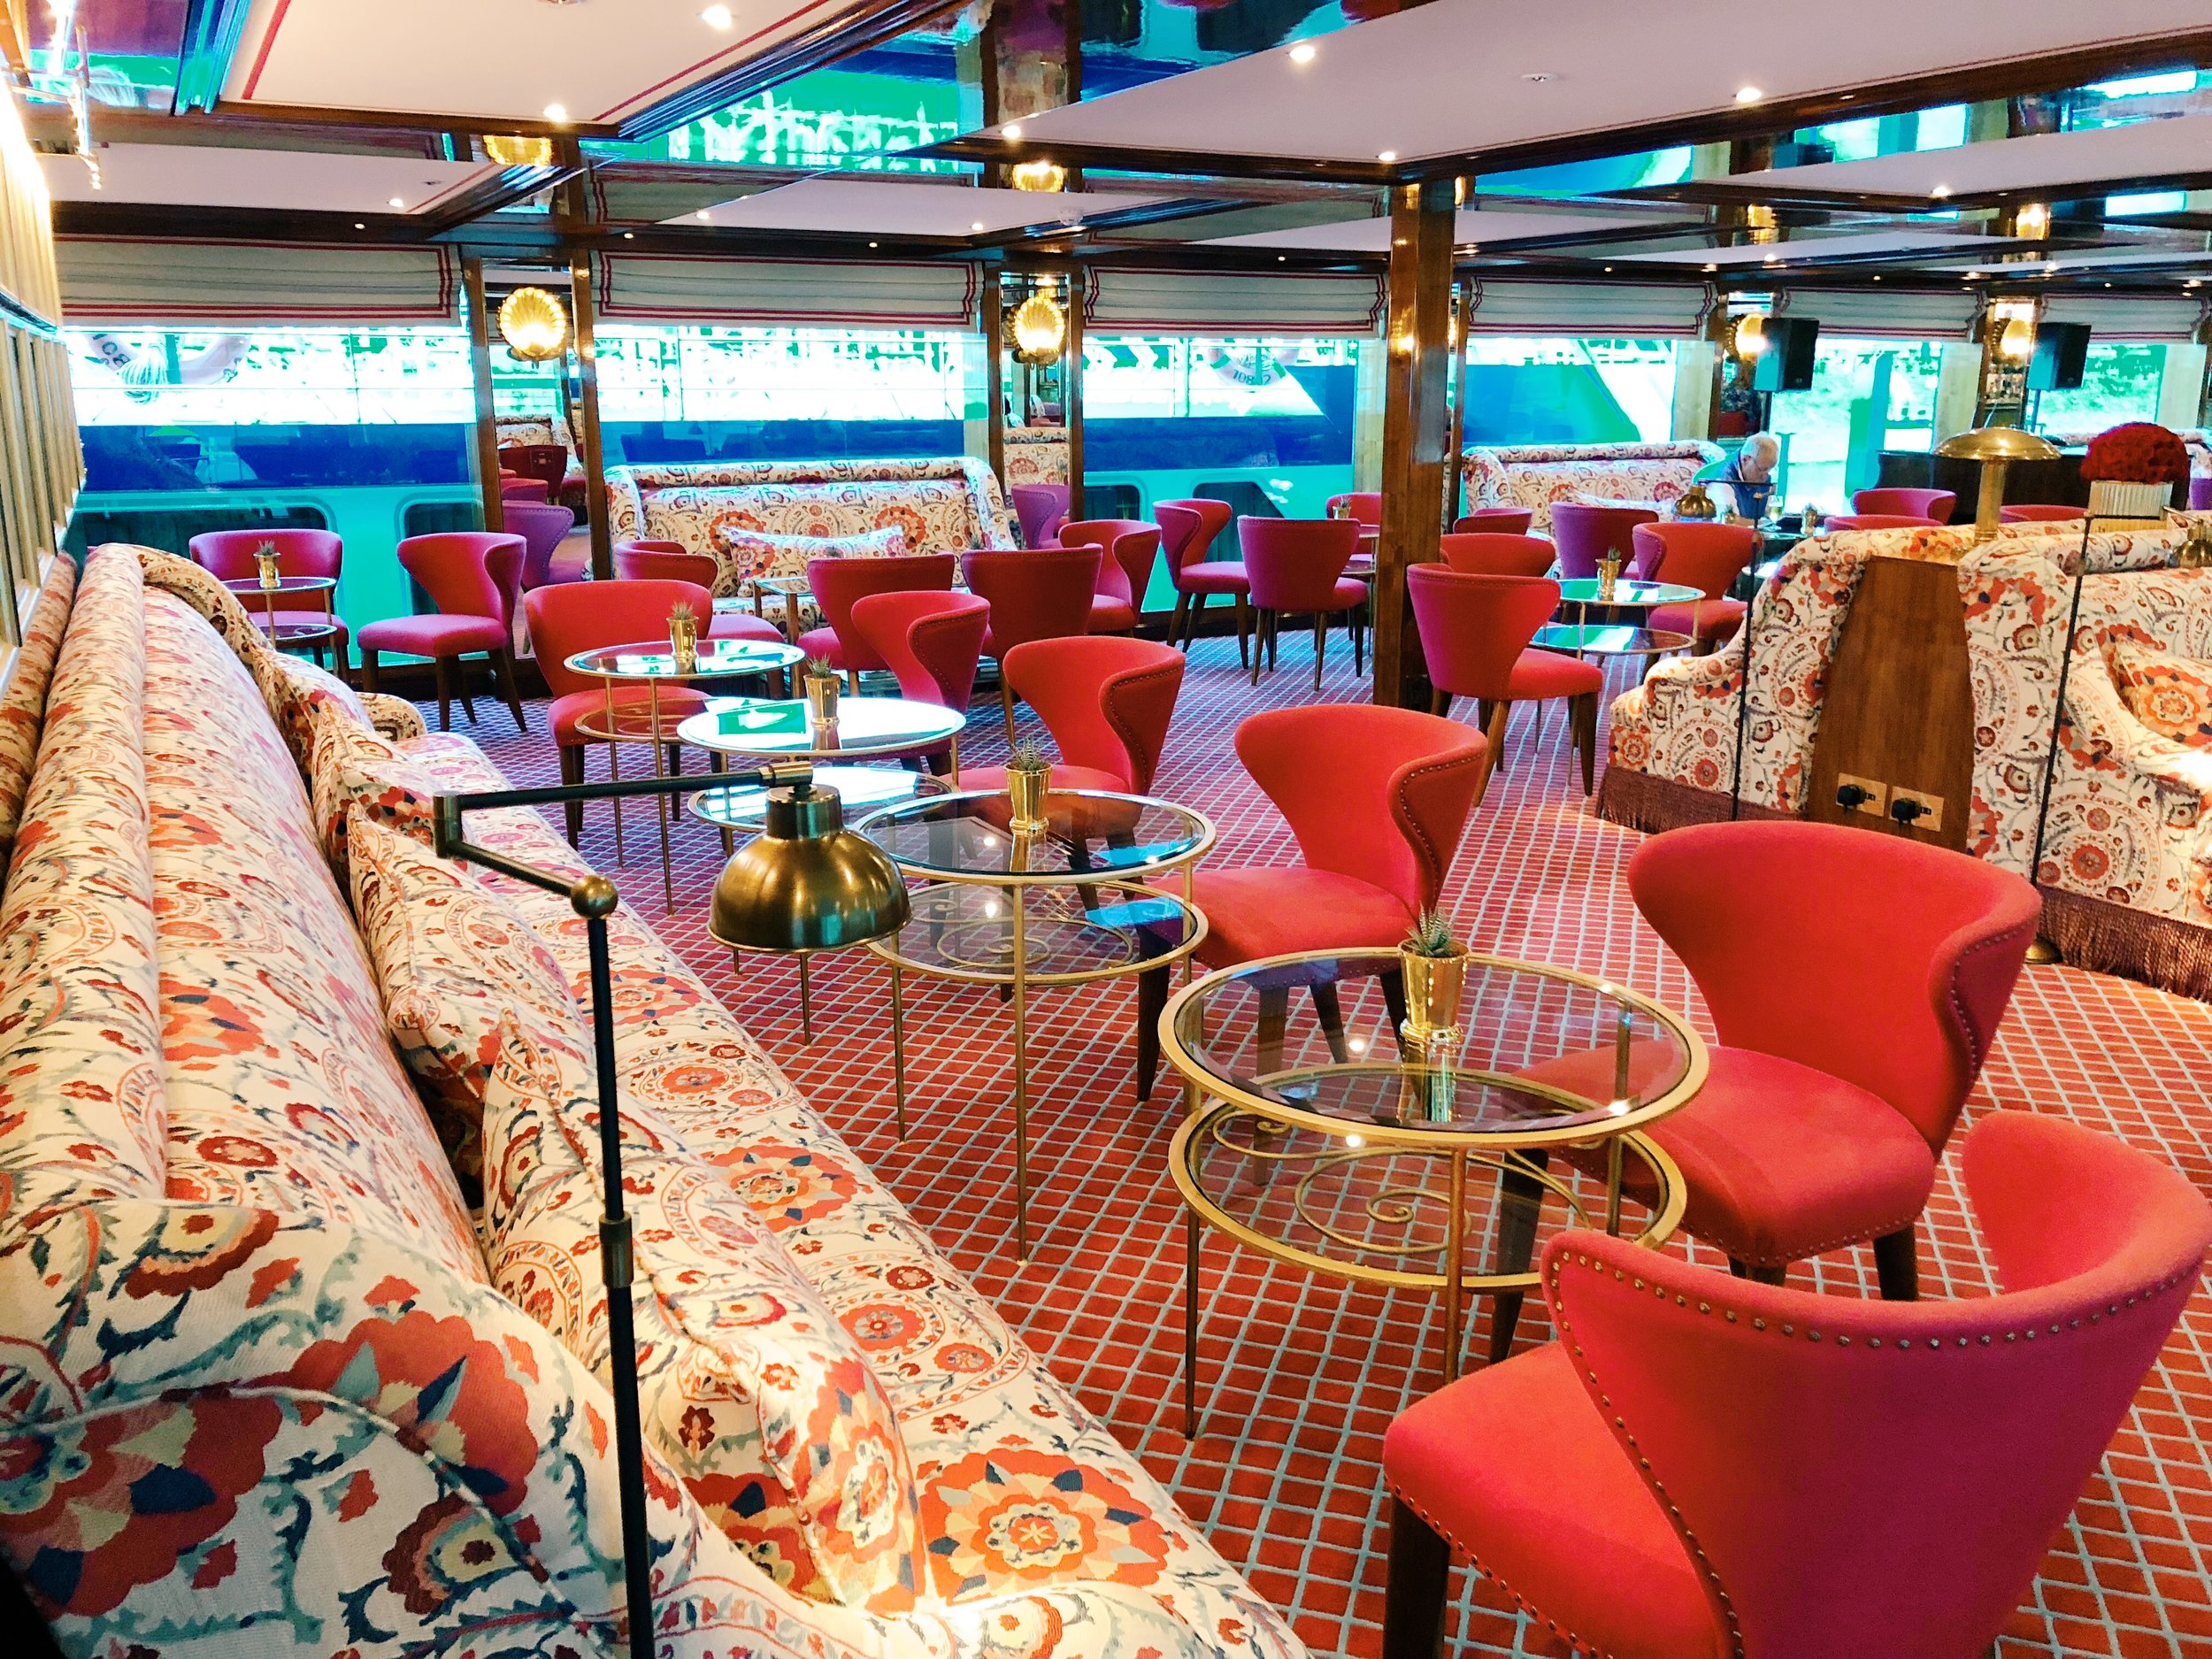 SS Joie de Vivre;  You can take the girl out of Paris, but you cannot take Paris out of the girl.   This gorgeous ship is a floating boutique hotel with fresh flowers and greens among its beautiful details.